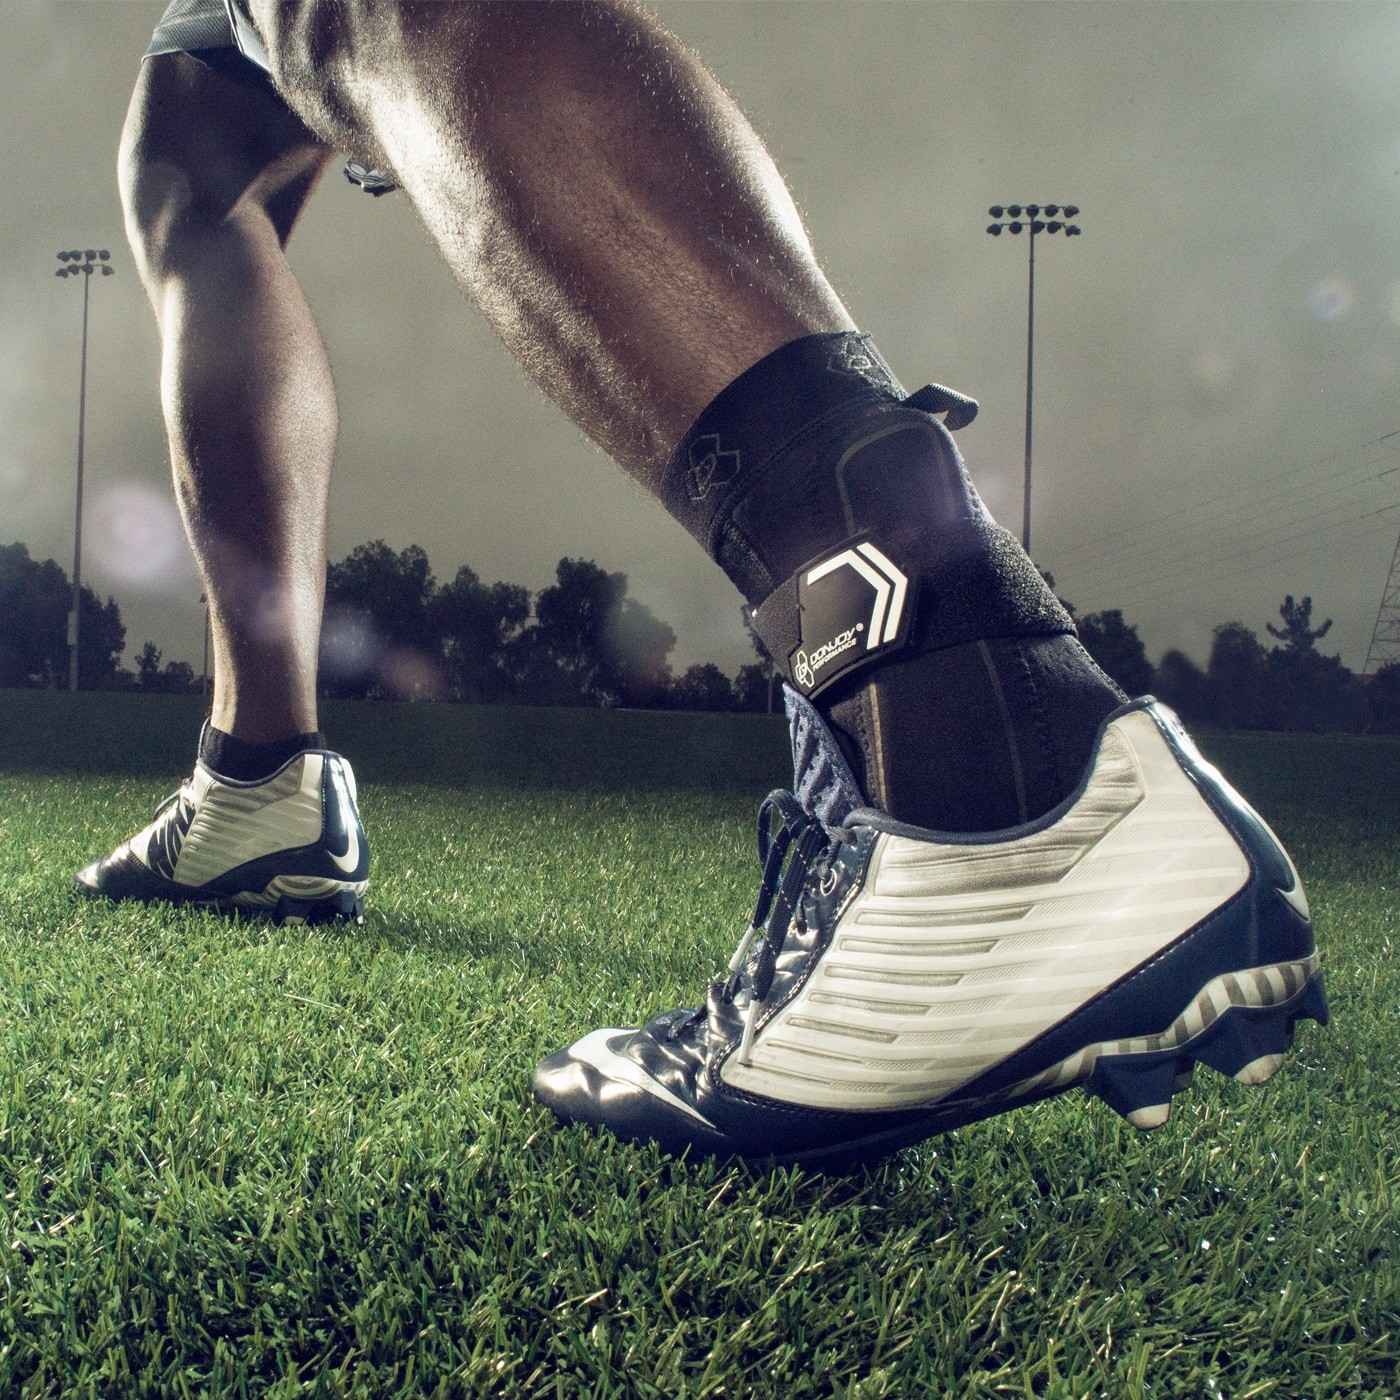 Walking Softball Running Prevent Ankle Sprains Tennis Football DonJoy Performance Bionic Ankle Brace Rolls//Ideal for Soccer Baseball 60/° Stay w//Stirrup for Mild to Moderate Ankle Support